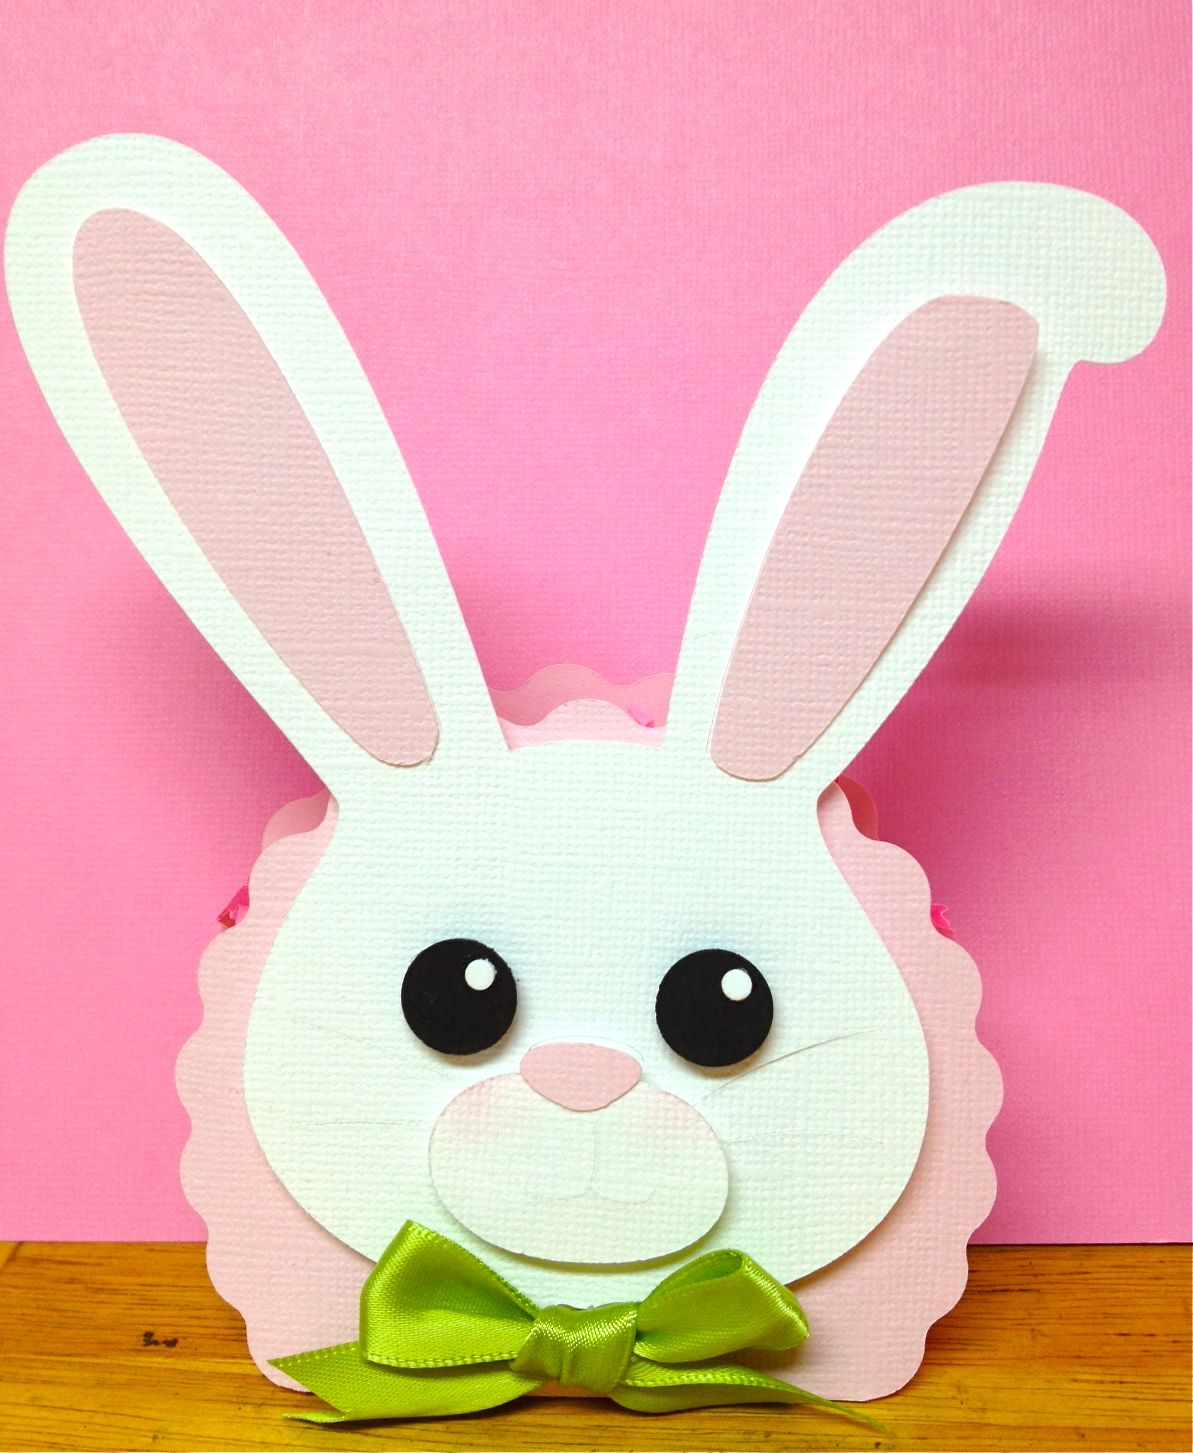 Easter paper craft ideas - Easter Bunny Crafts 5 Easter Crafts And Ideas Pinterest Easter Bunny Craft